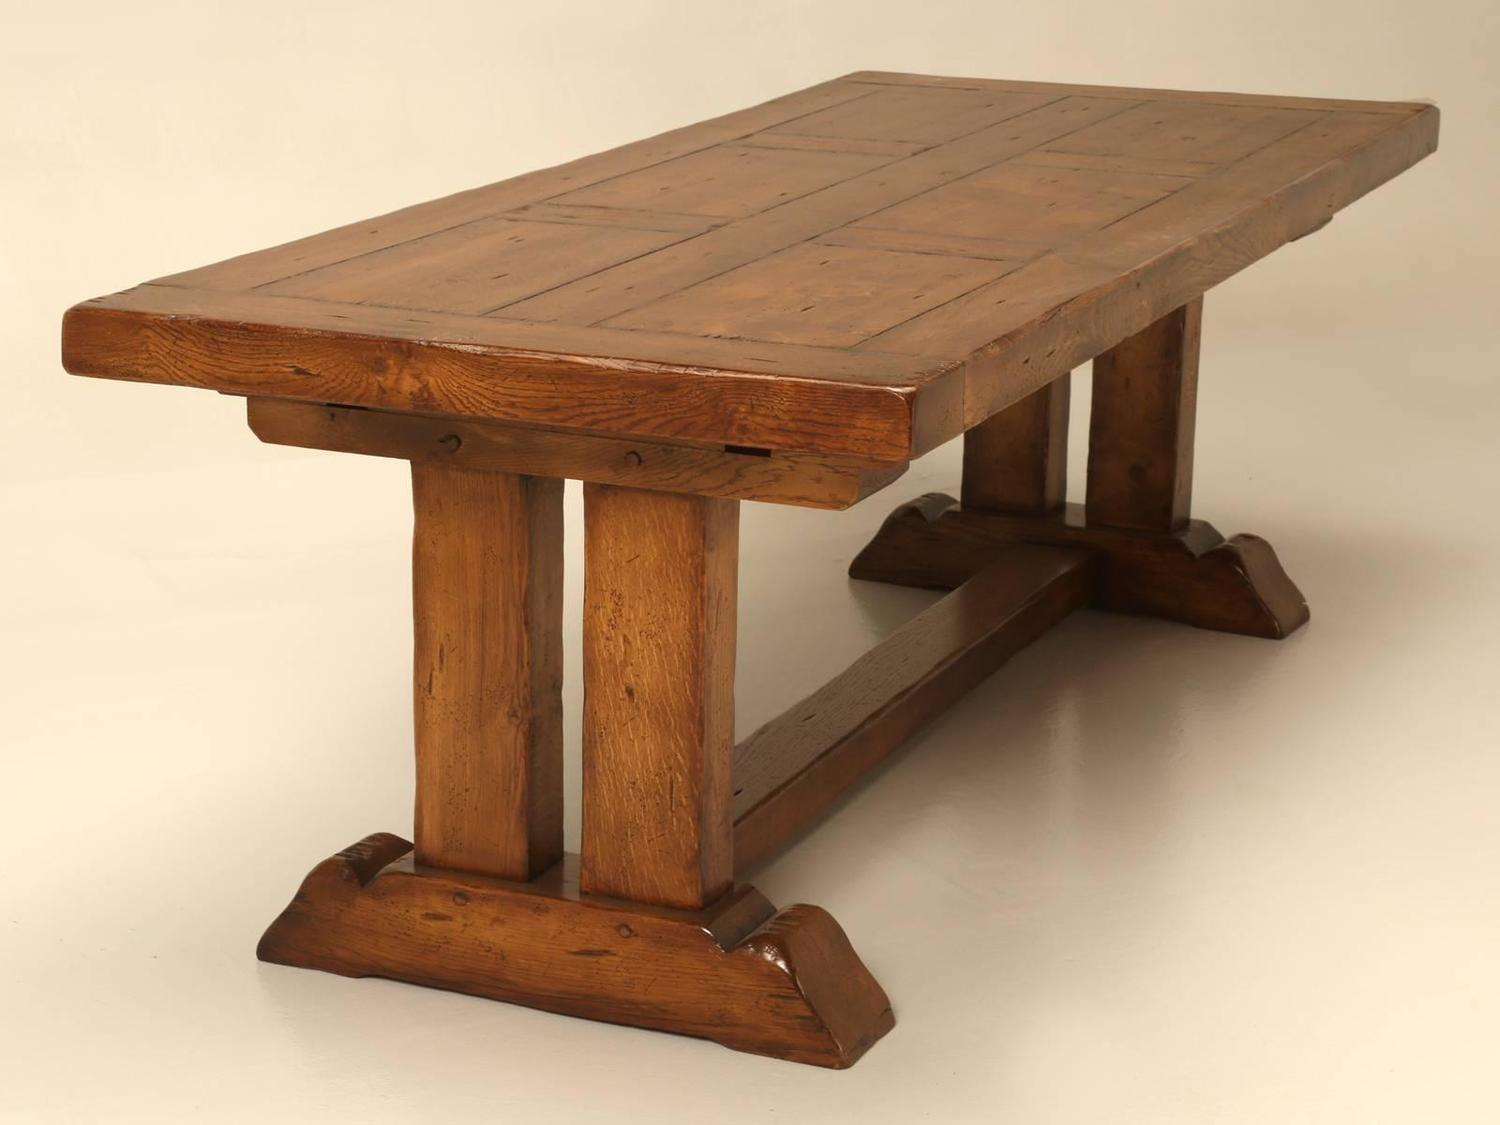 French Oak Trestle Dining Table With Two Leaves For Sale With Most Recent Trestle Dining Tables (View 7 of 15)